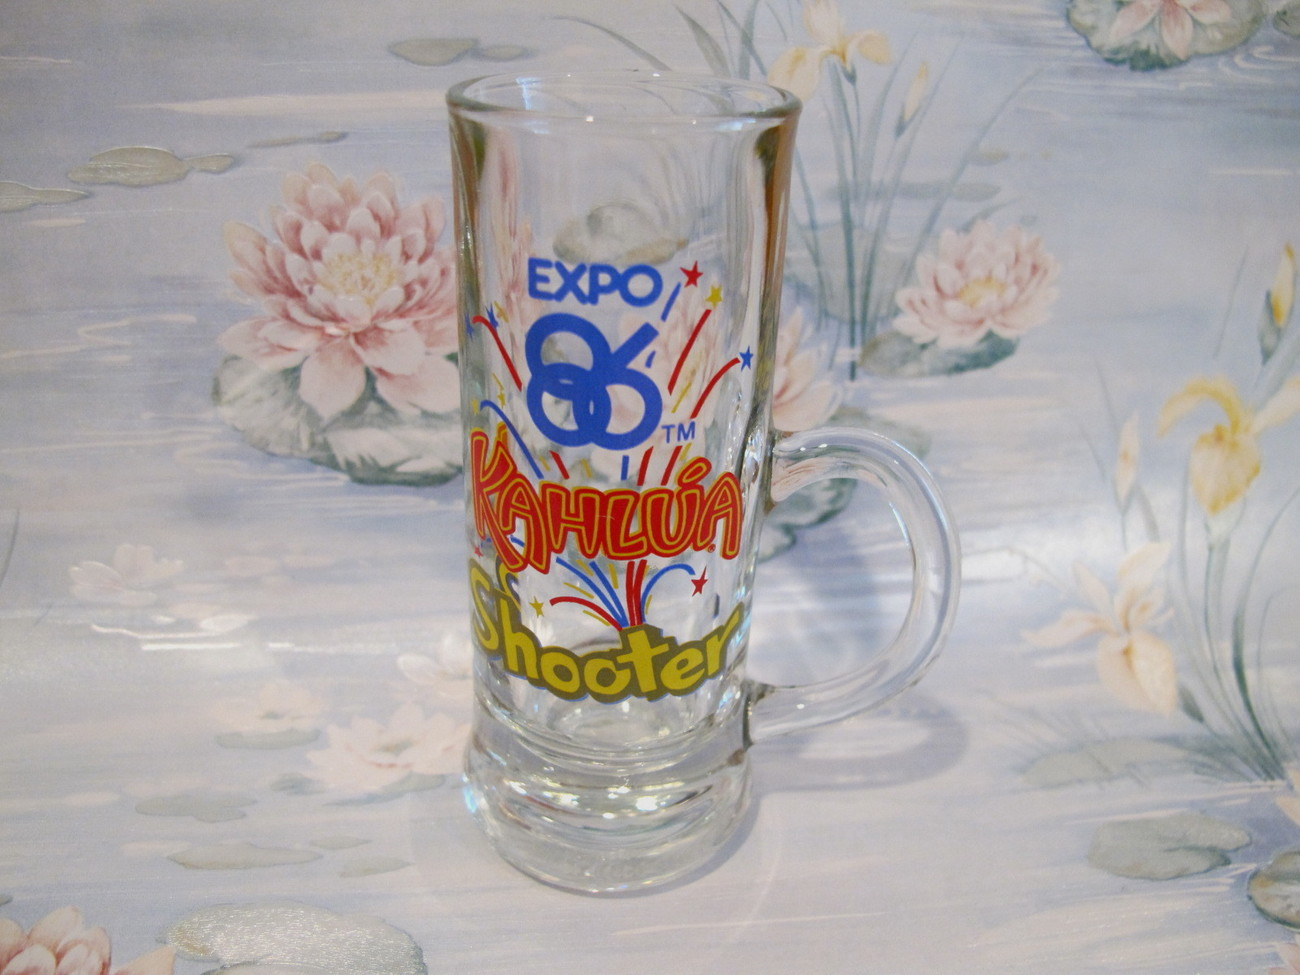 Primary image for Expo 86 Vancouver BC Kahlua Shooter Shot Glass Souvenir Collectible